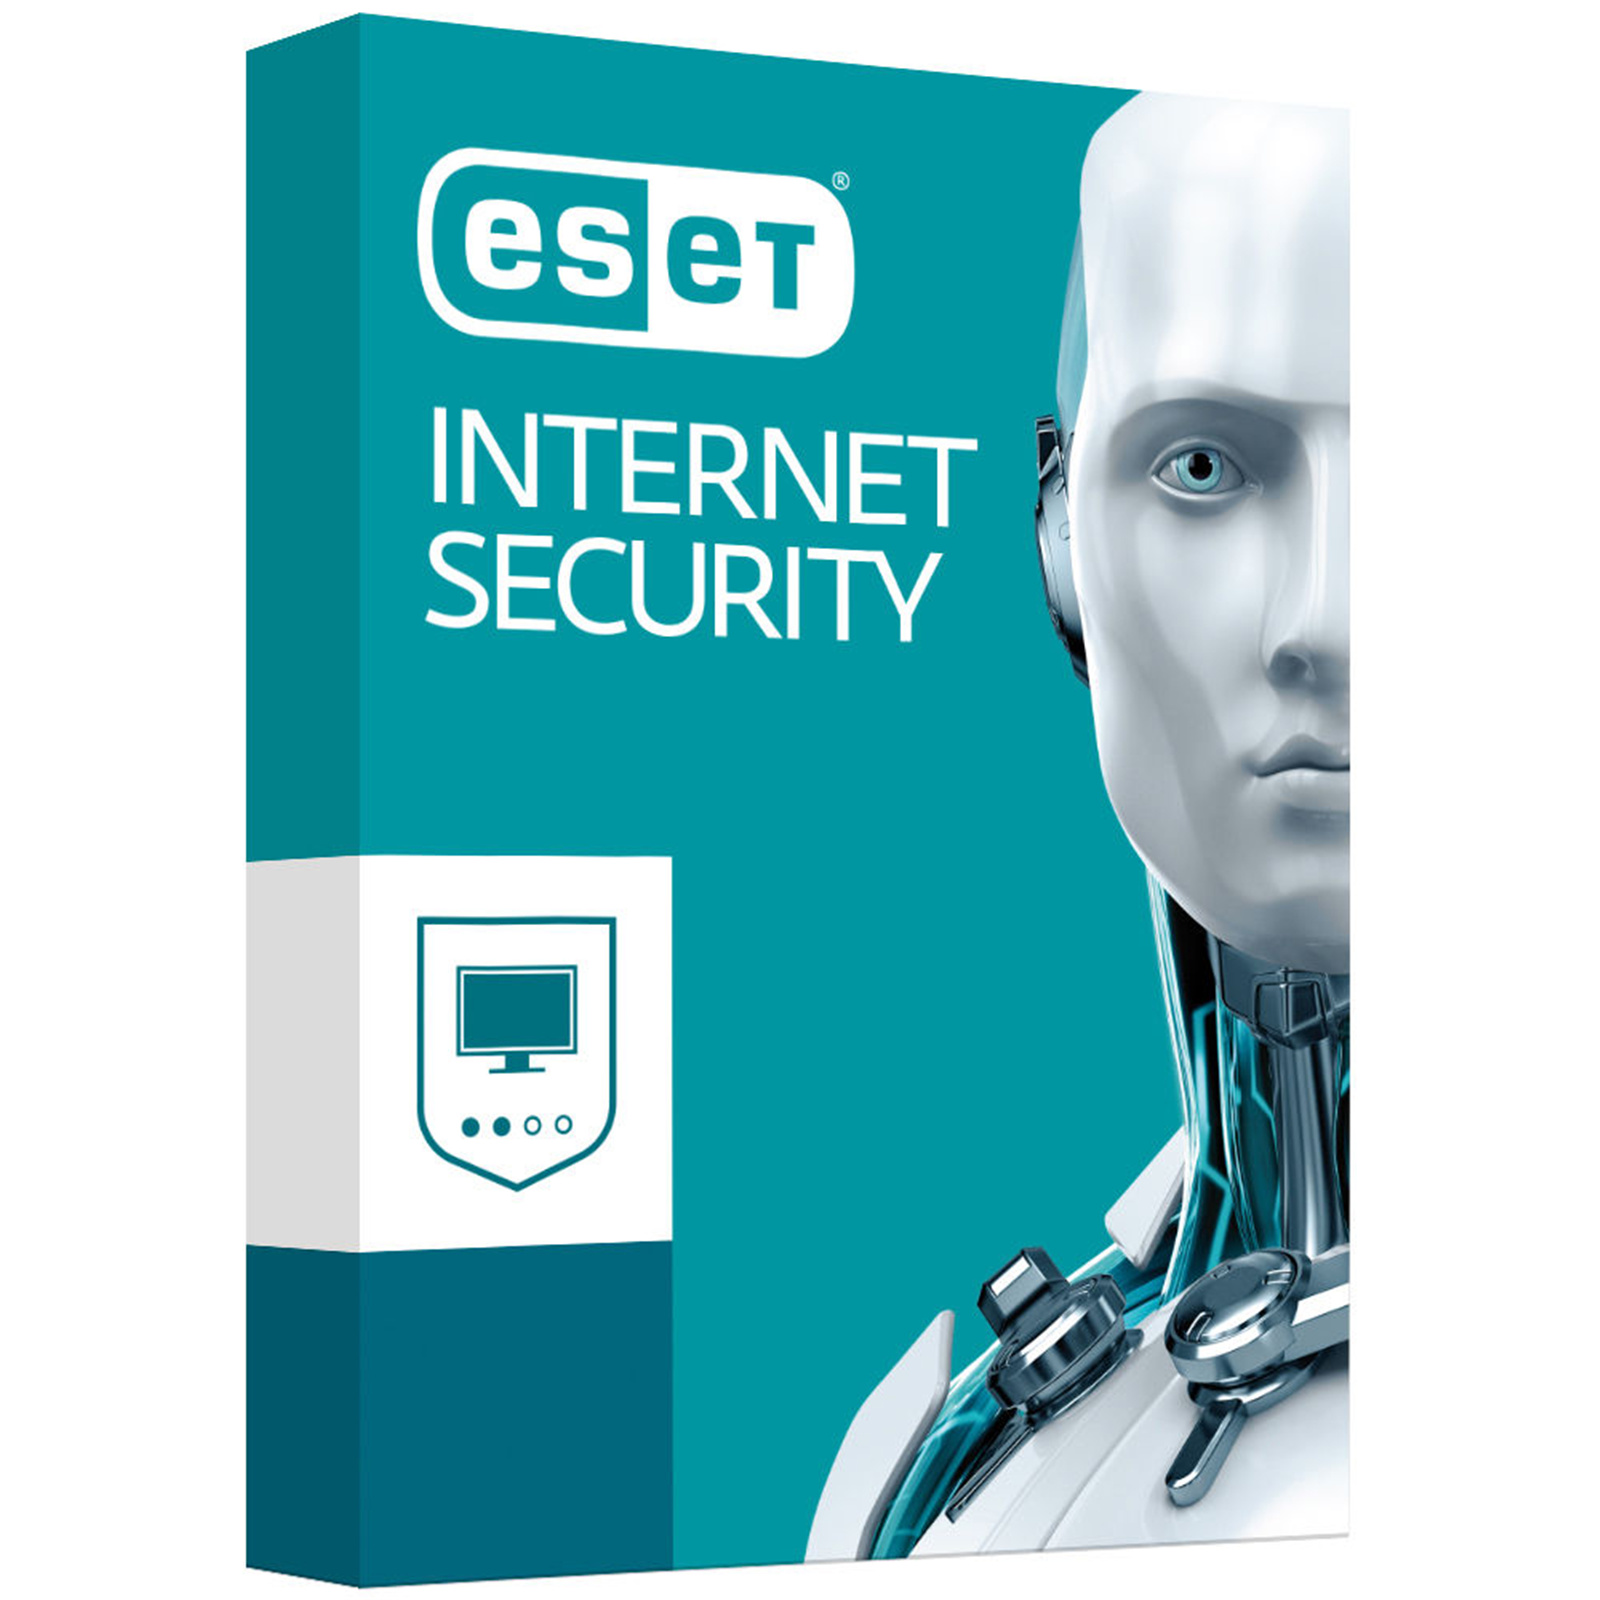 Buy the ESET Internet Security Retail Box Product - 1 User